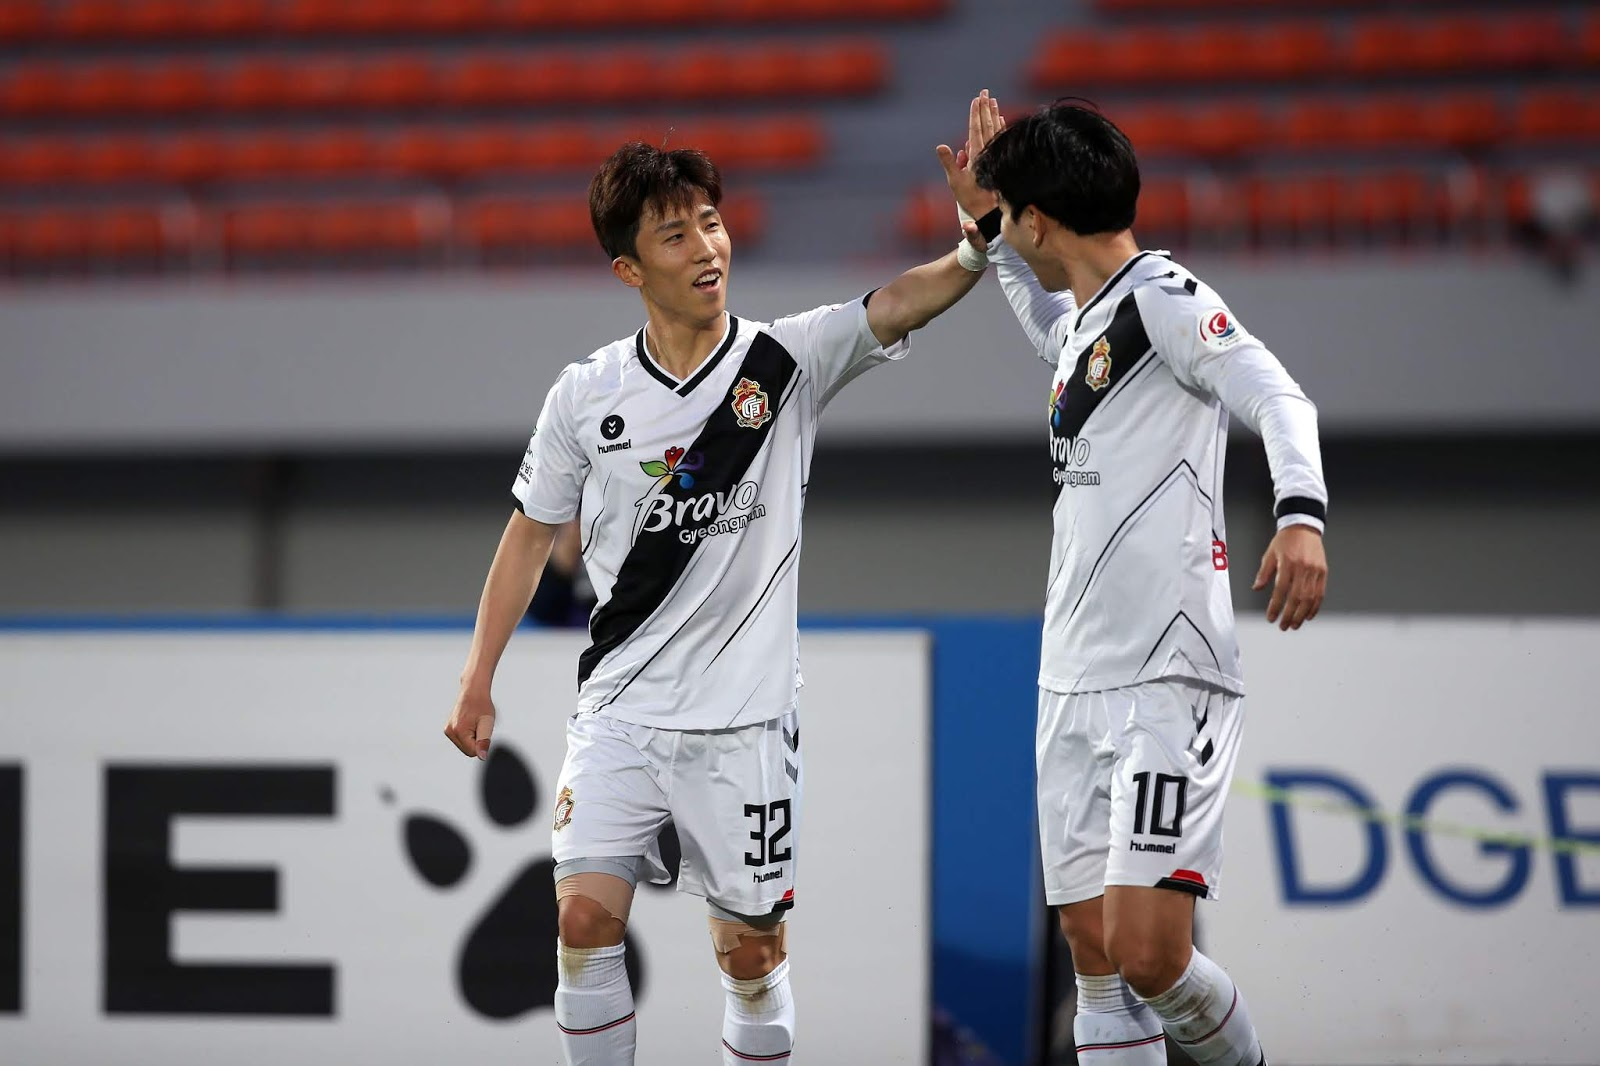 K League 1 Preview: Gyeongnam FC vs FC Seoul